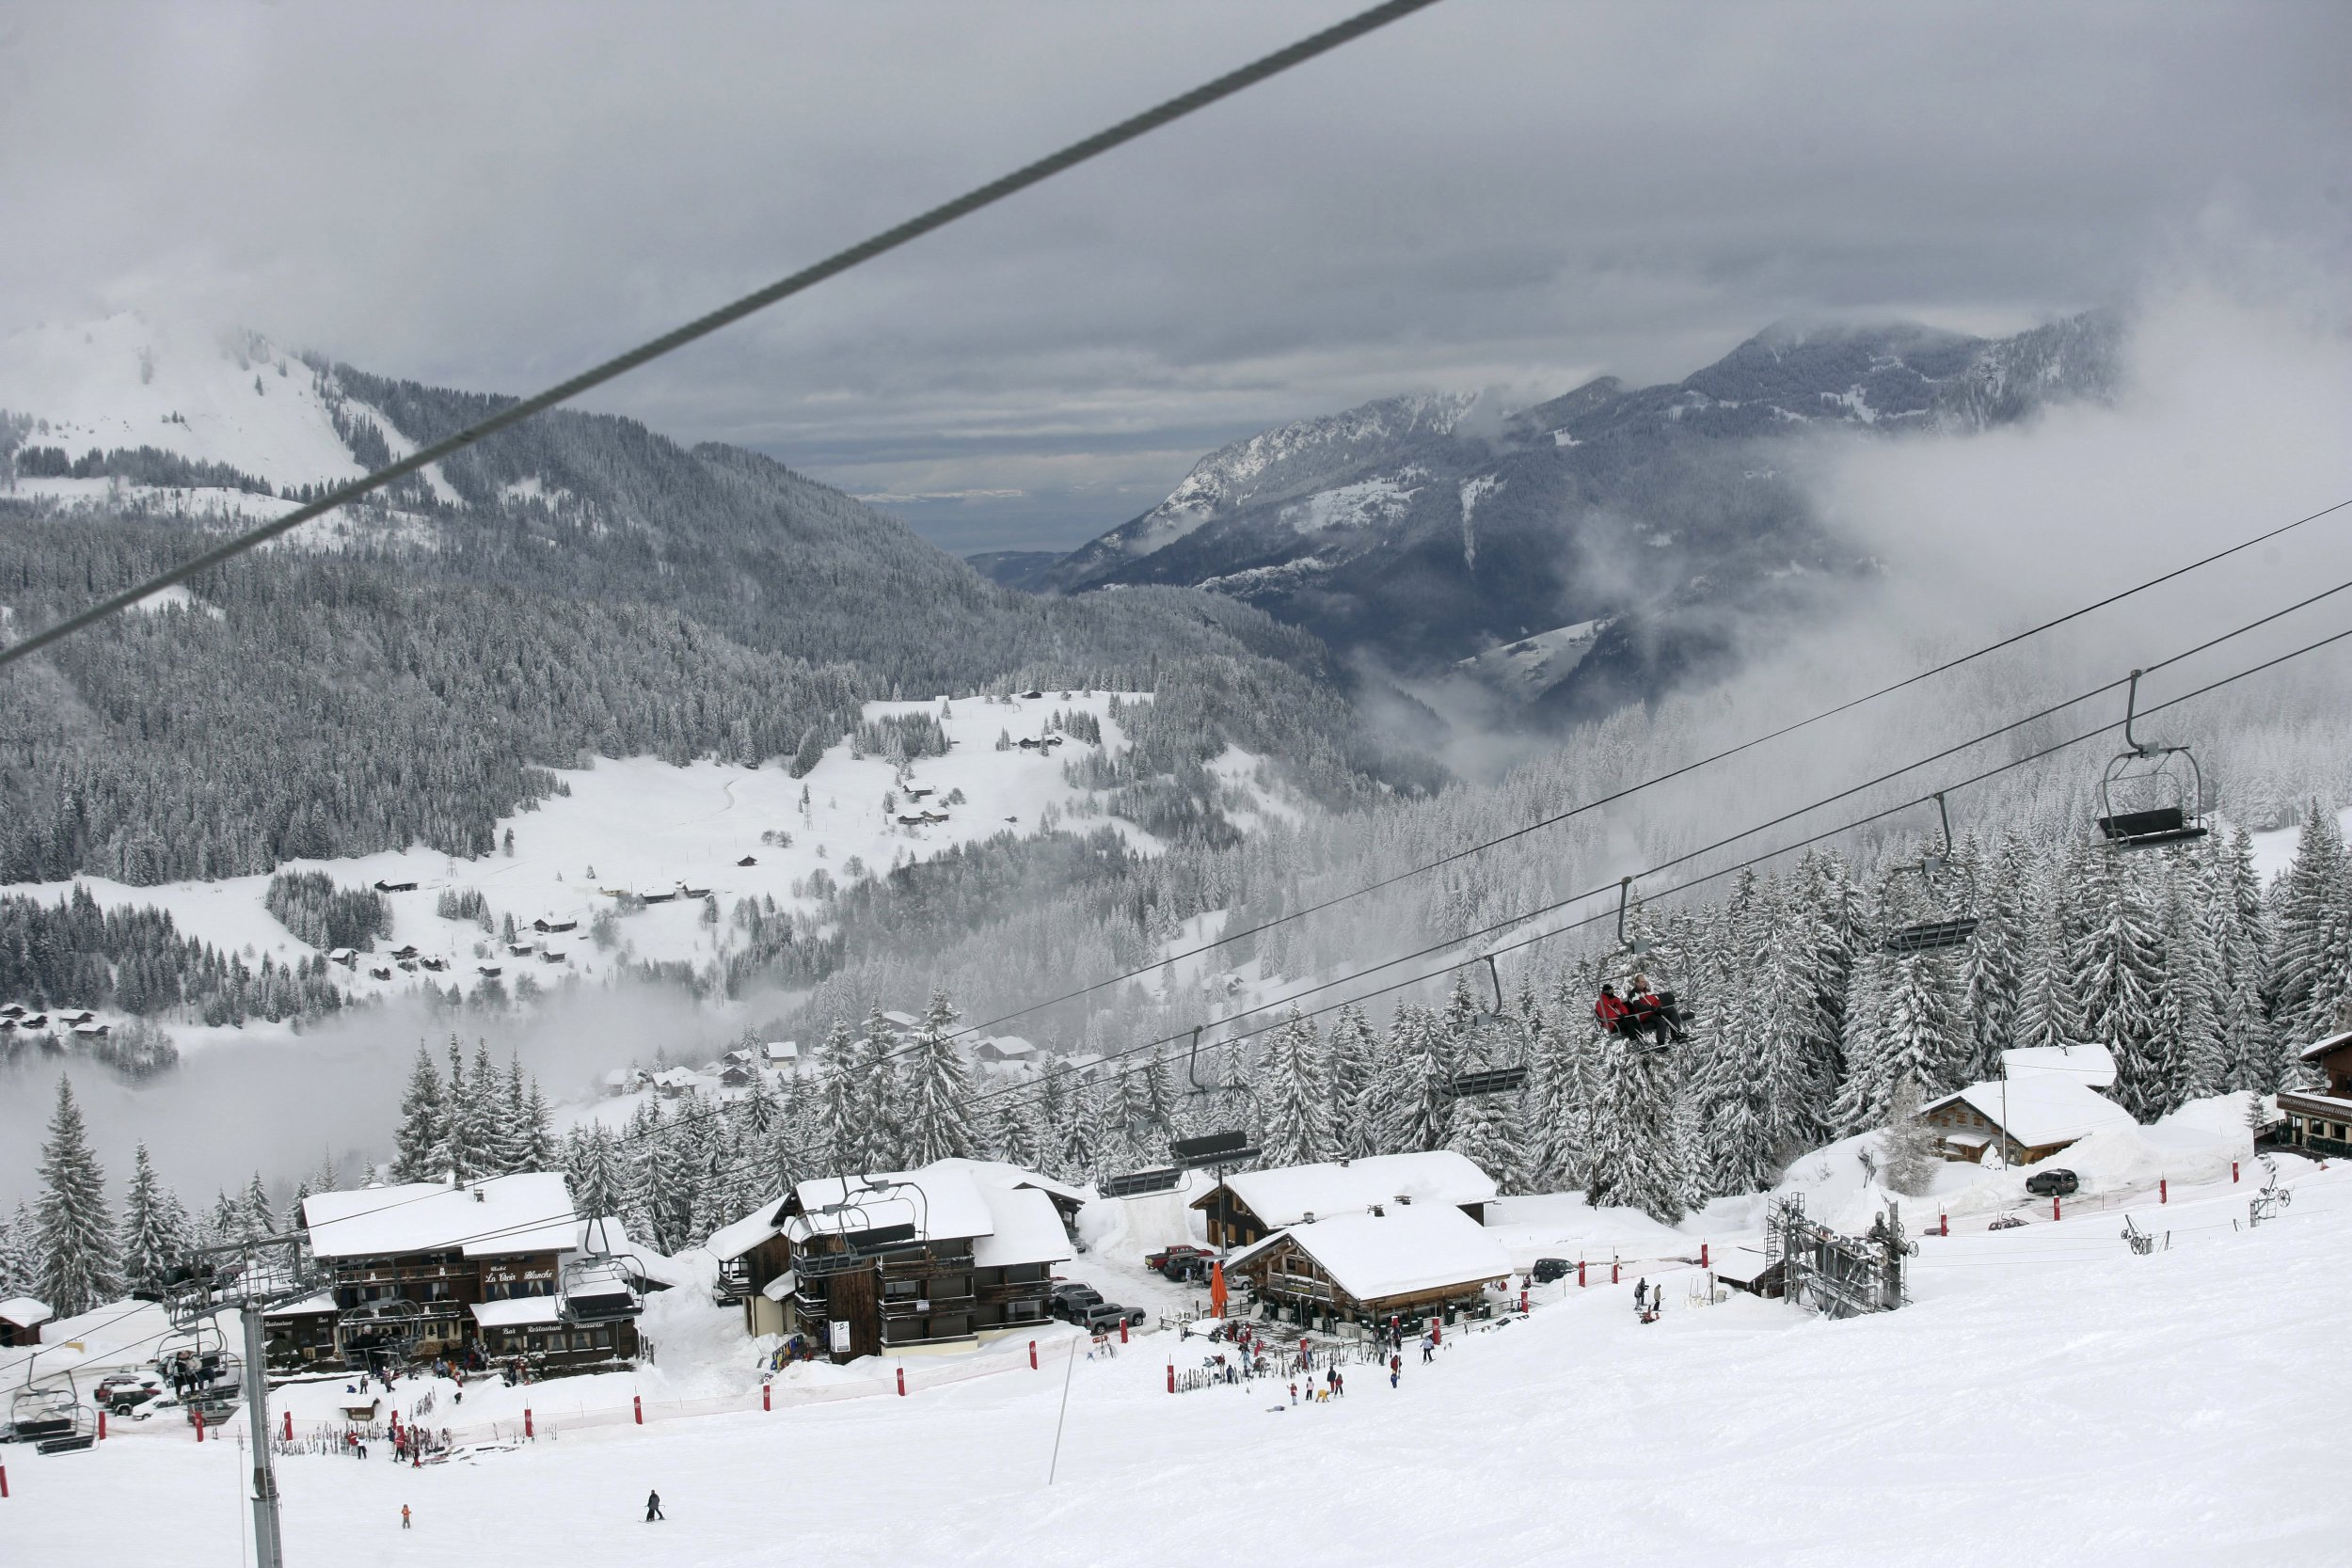 British snowboarder dies after falling nearly 100ft